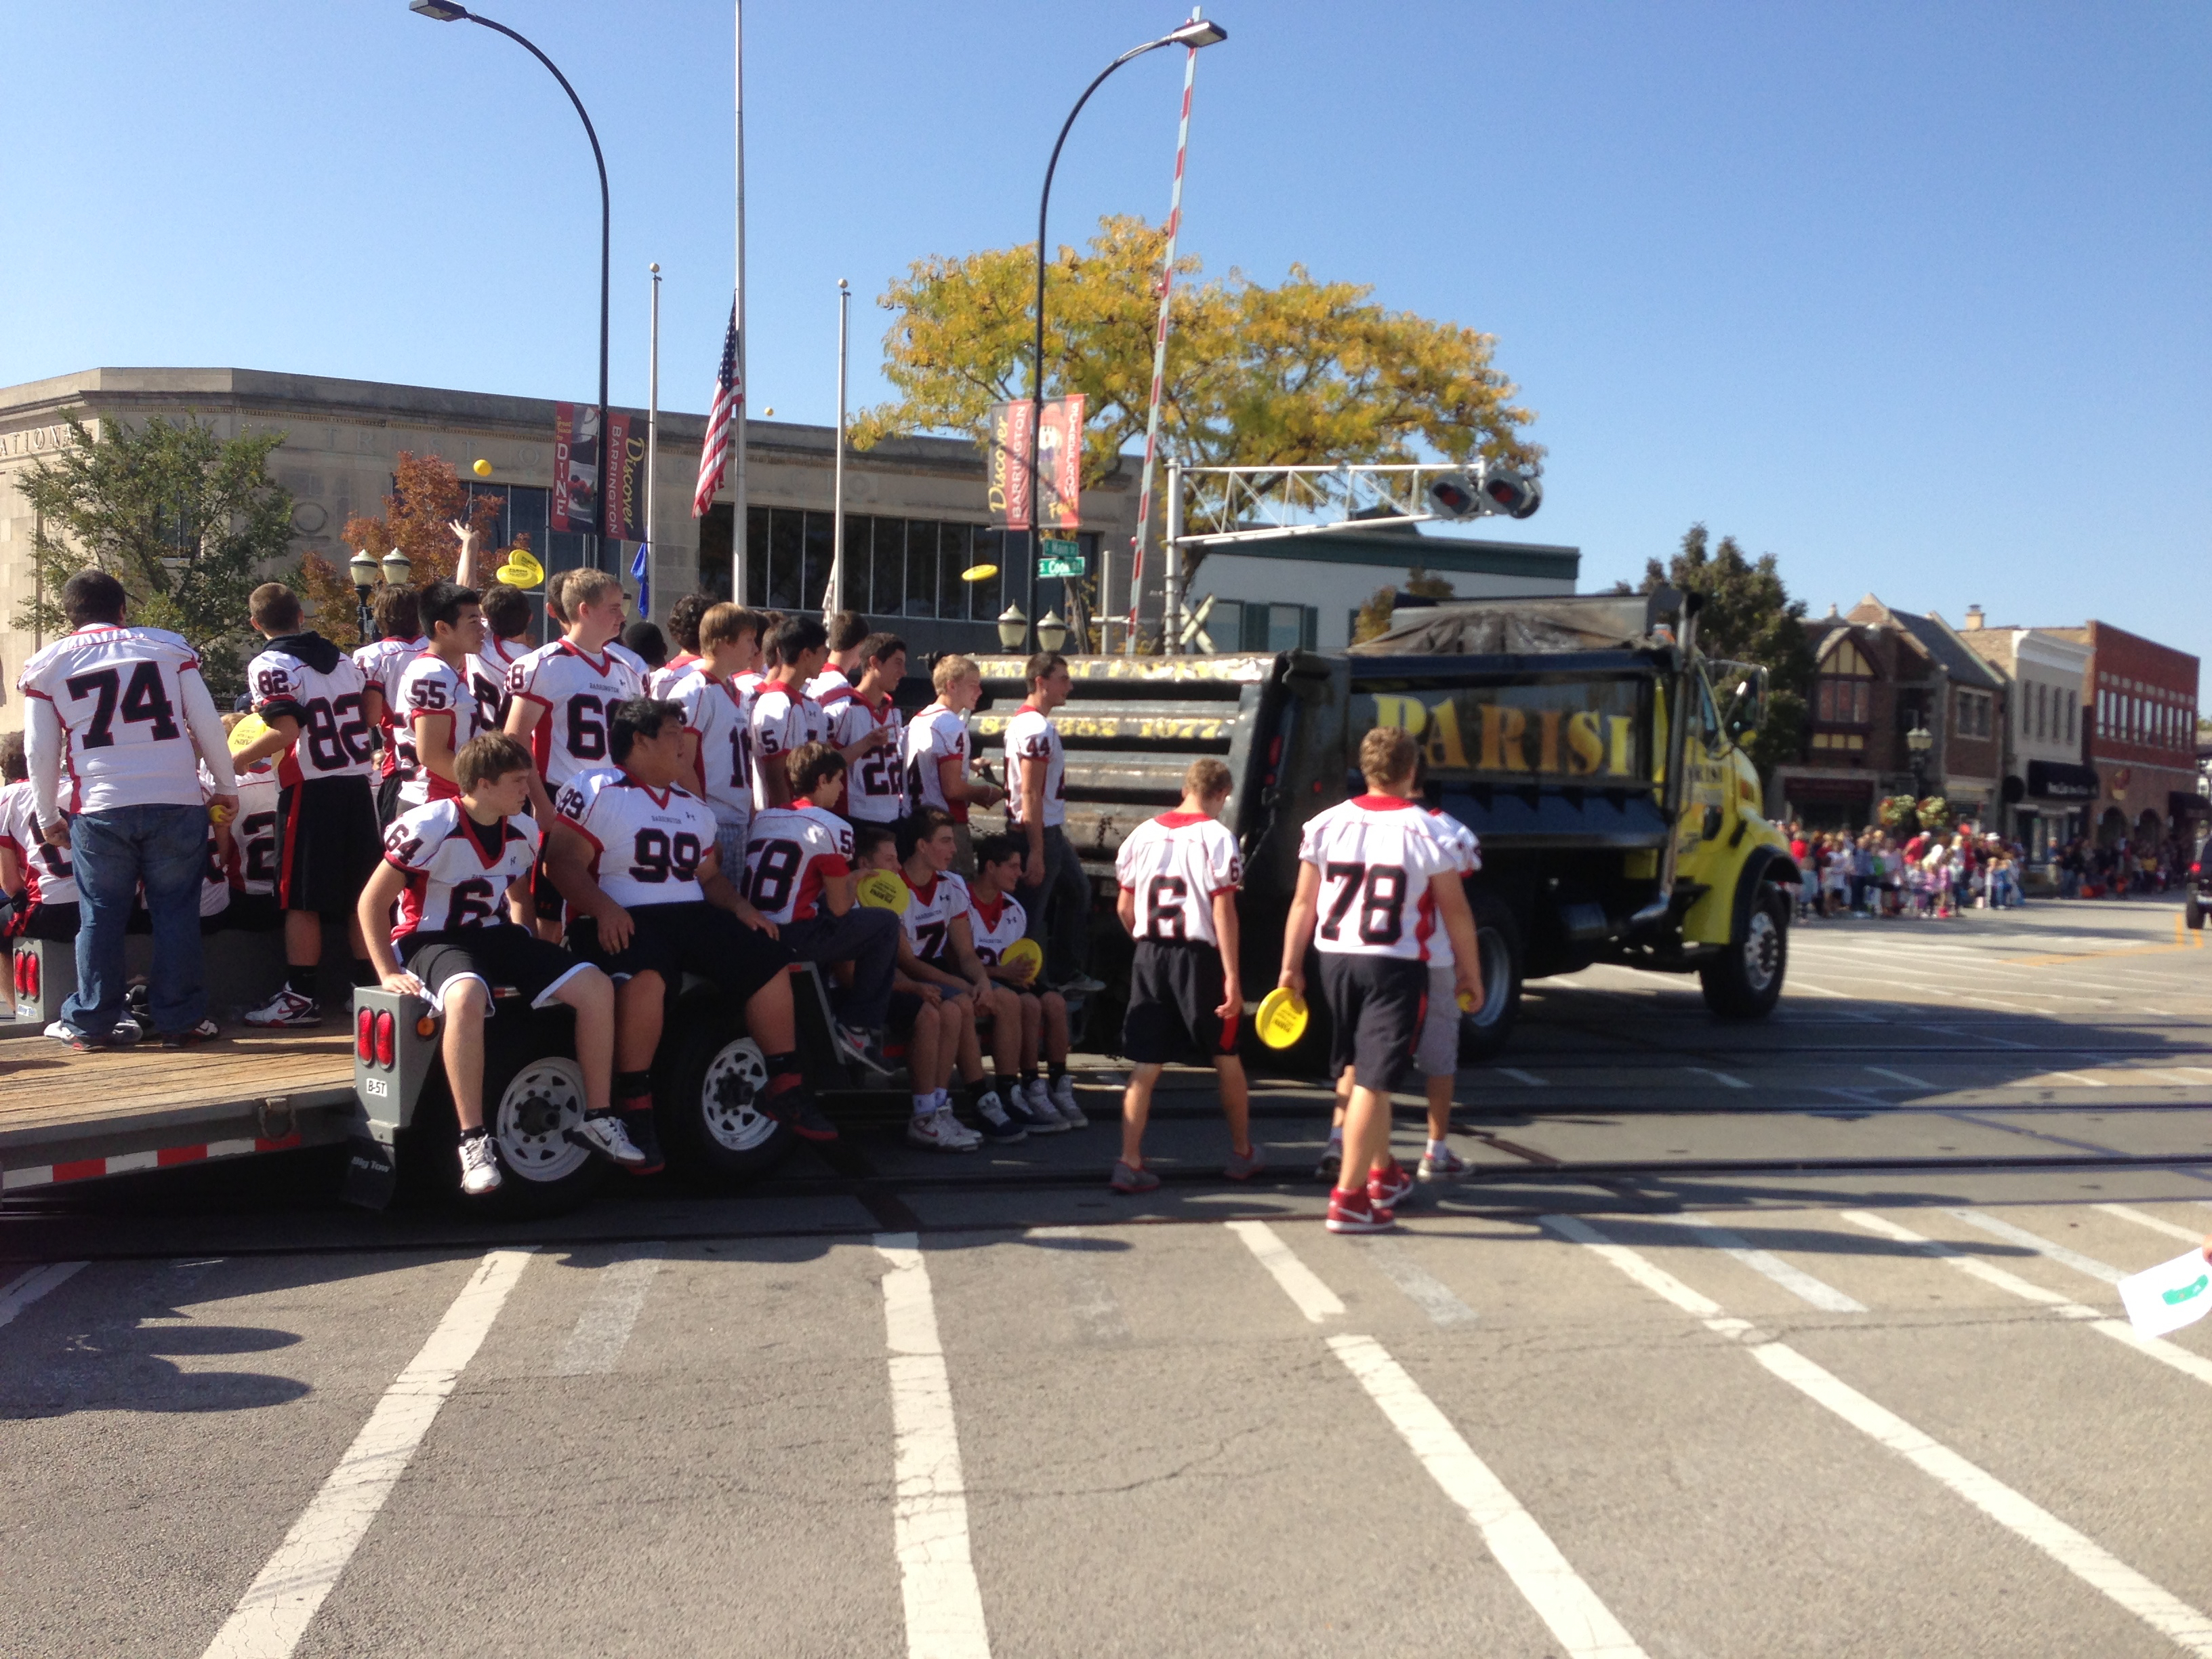 Parade football team